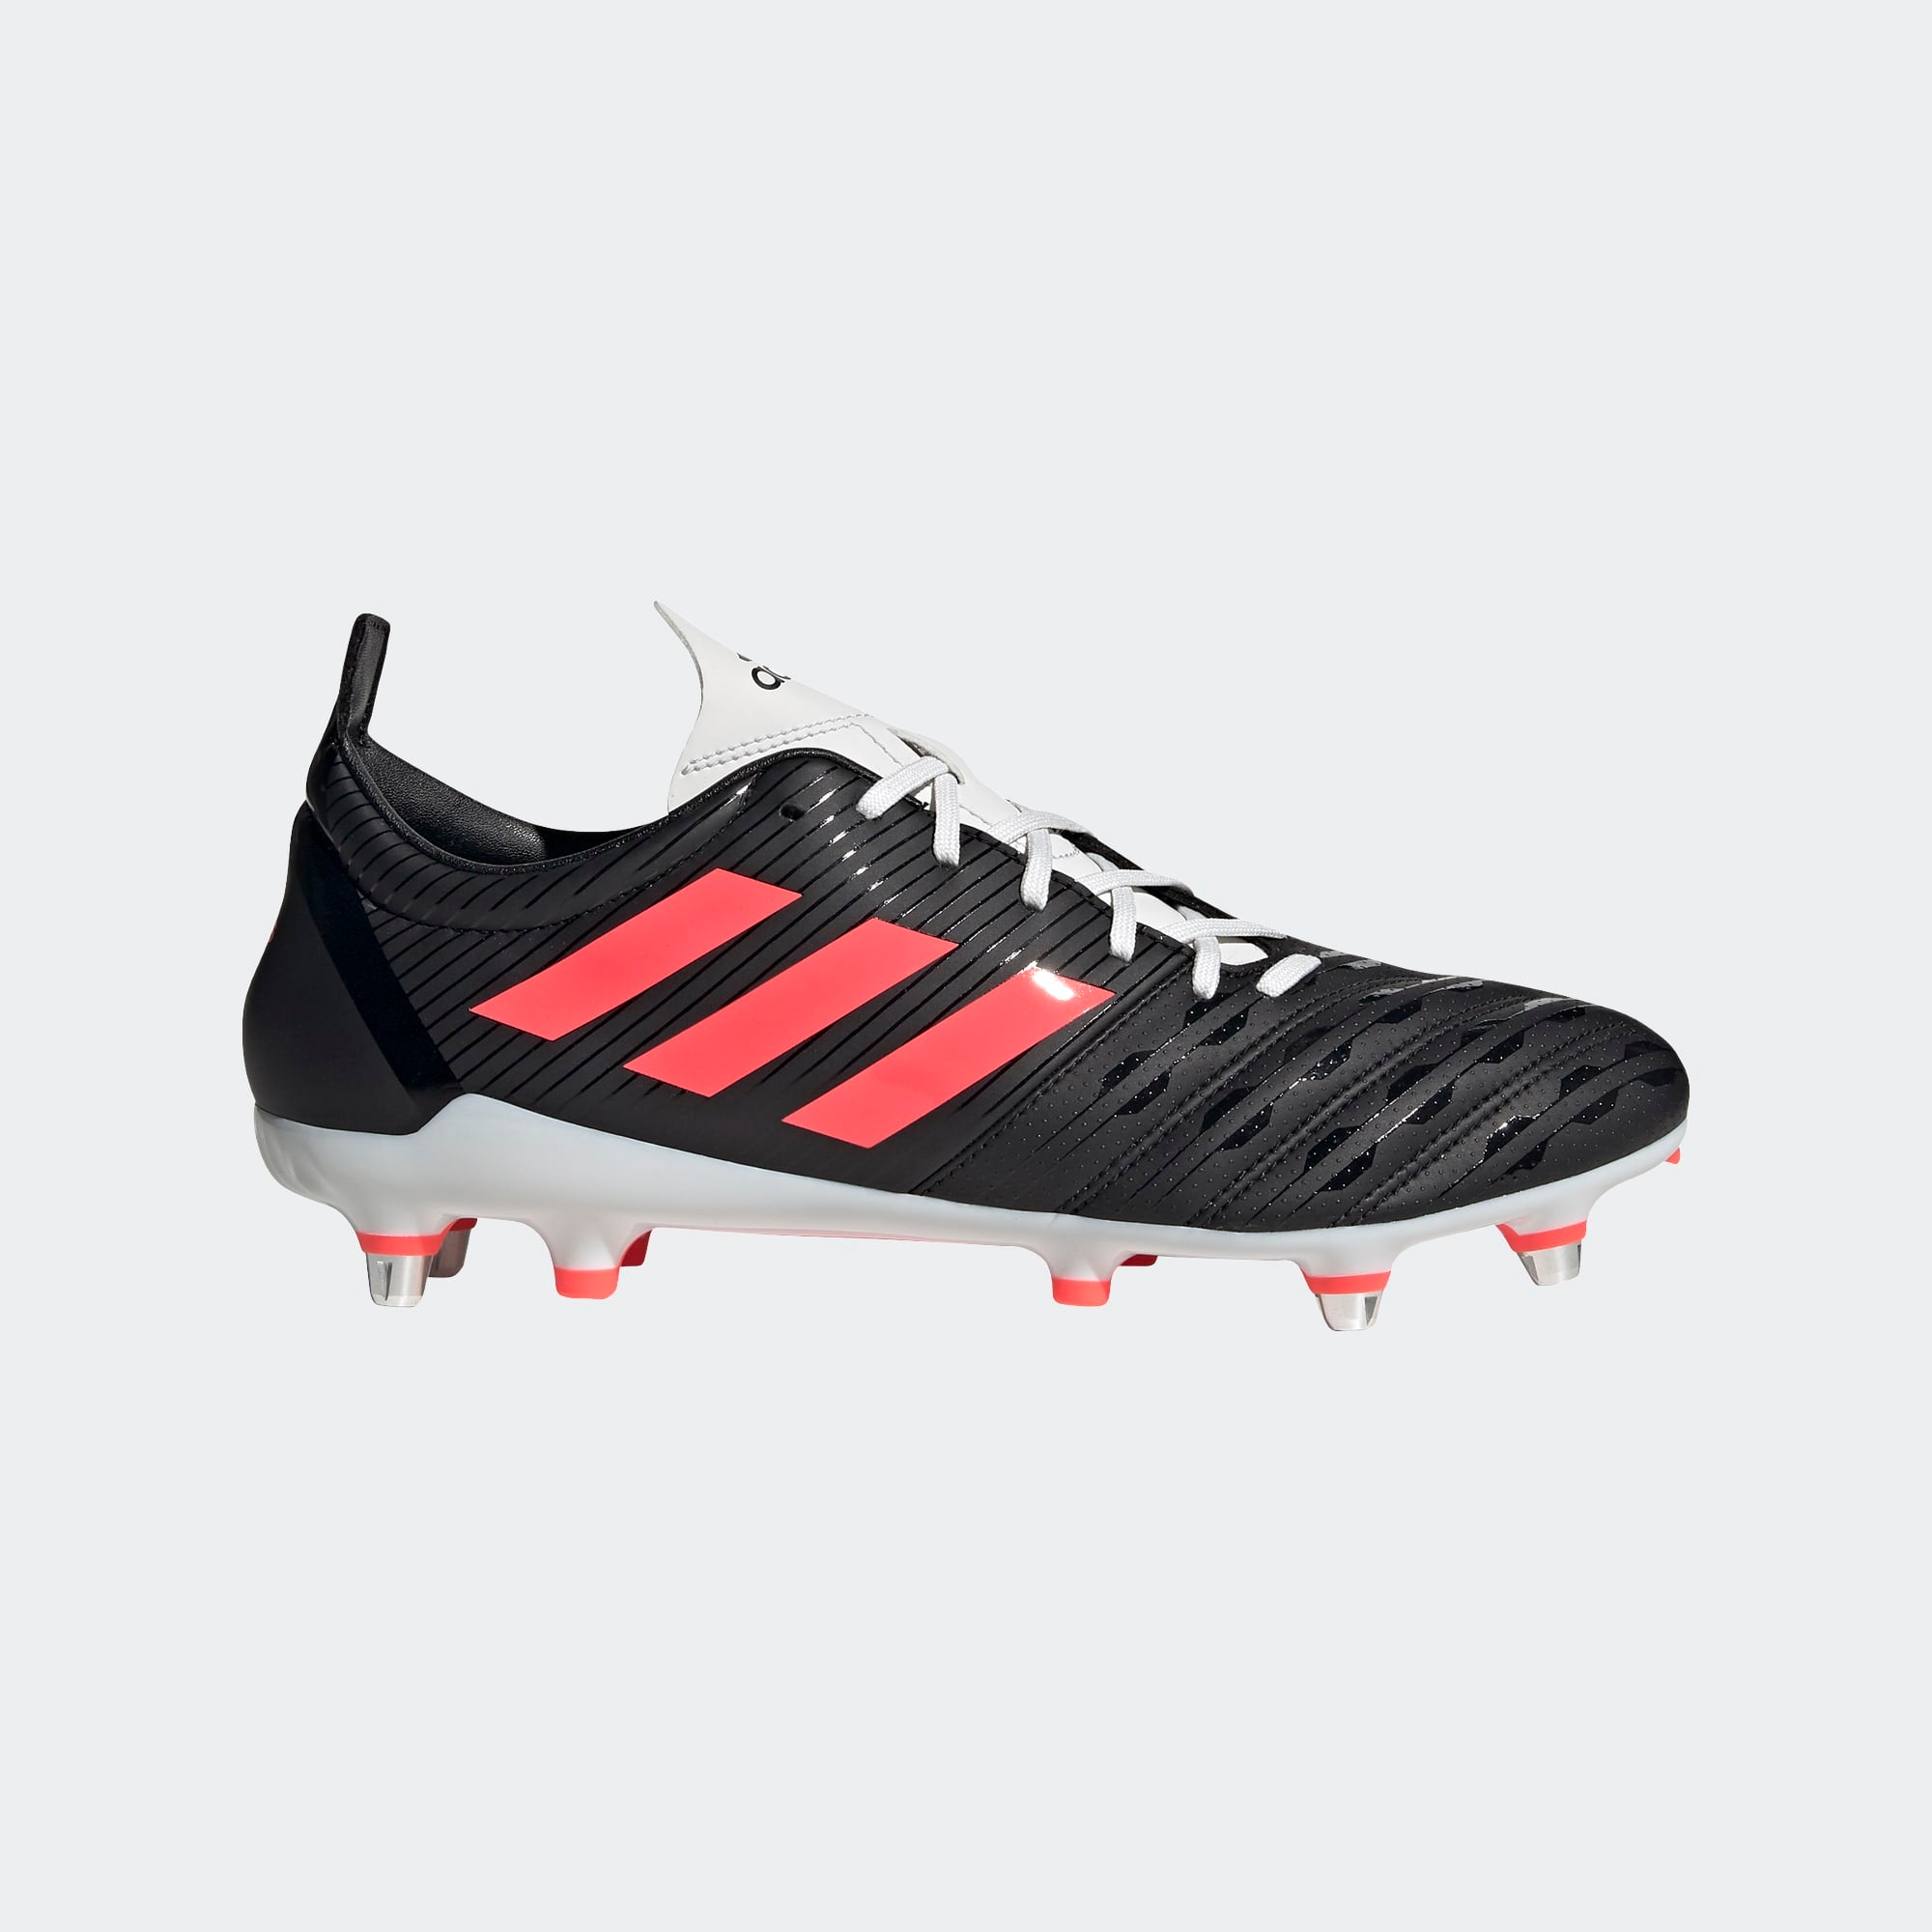 Adidas Malice SG Adult Rugby Boots